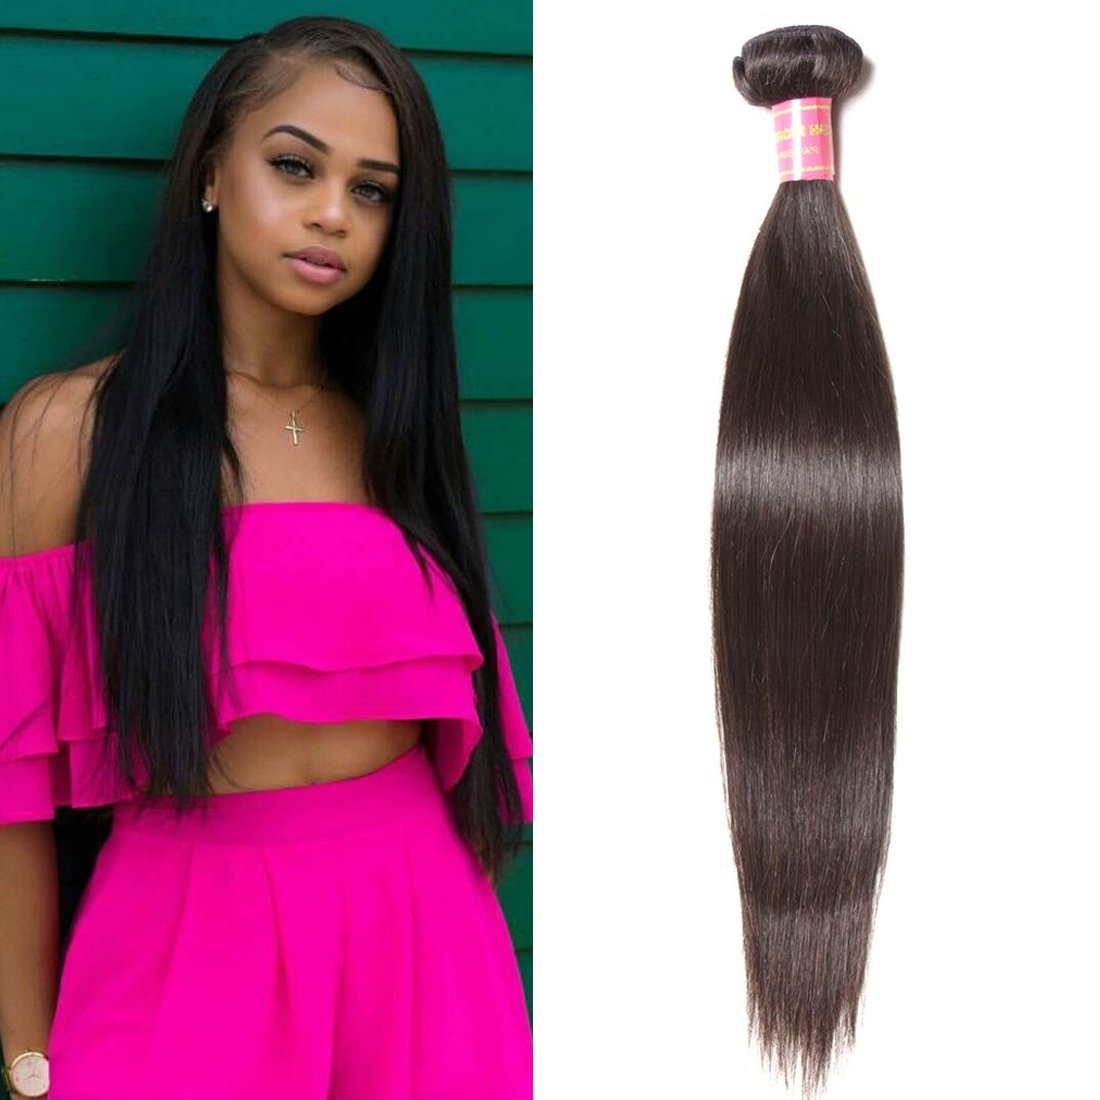 """YIROO 7A Brazilian Virgin Straight Hair Weave 1 Bundle 100% Unprocessed Brazilian Virgin Human Hair Weave Extensions Natural Color 95-100g/pc (16"""")"""